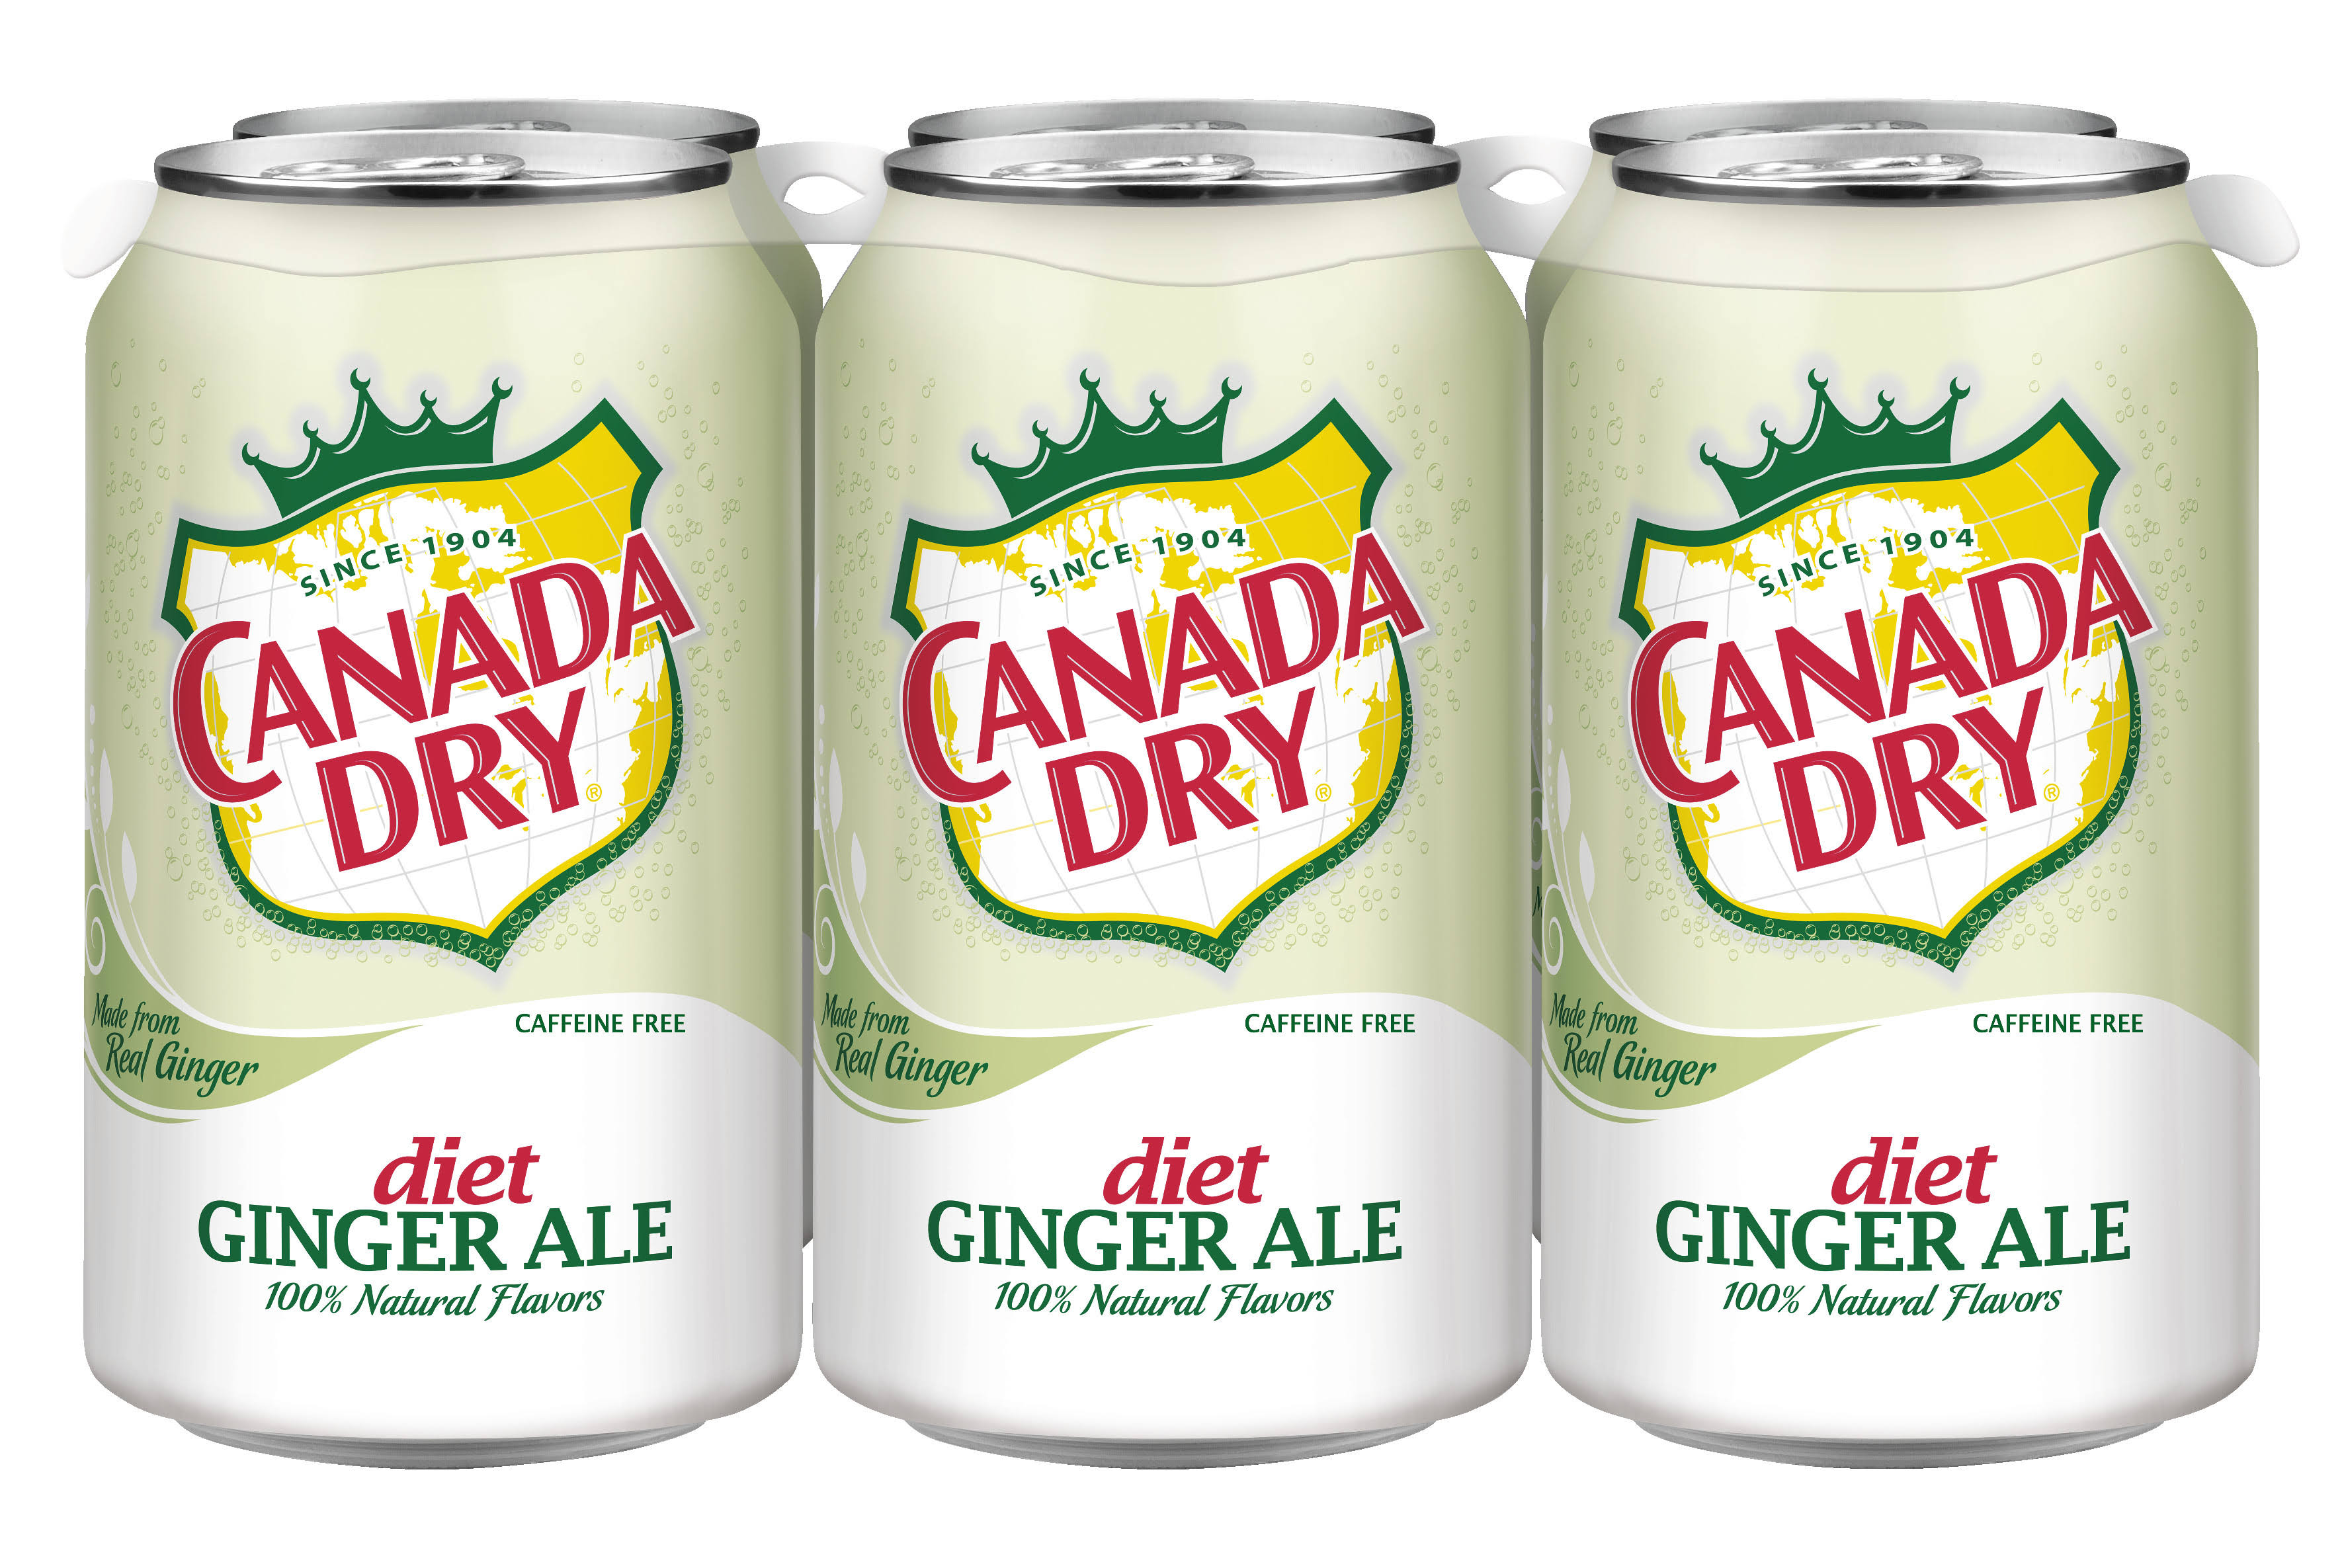 Canada Dry Ginger Ale, Diet - 6 pack, 12 fl oz